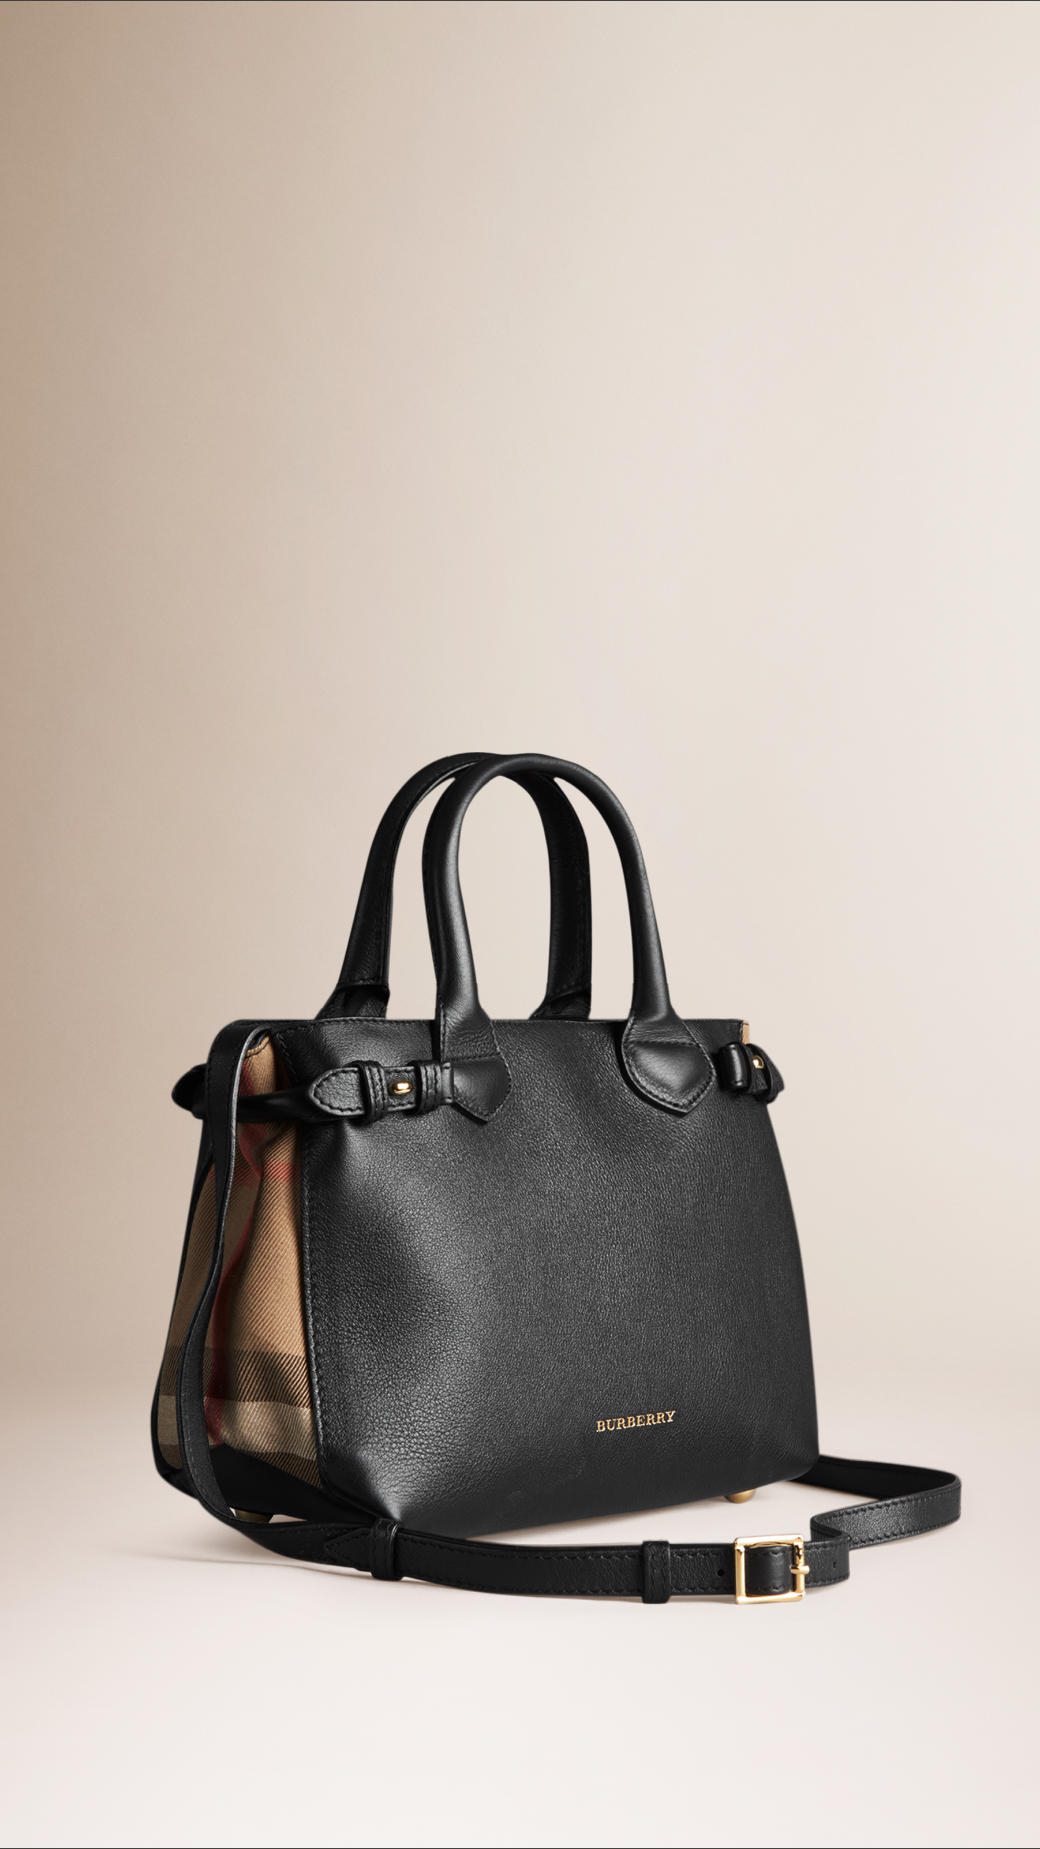 5d7bf30312e0 Burberry The Small Banner In Leather And House Check in Black - Lyst